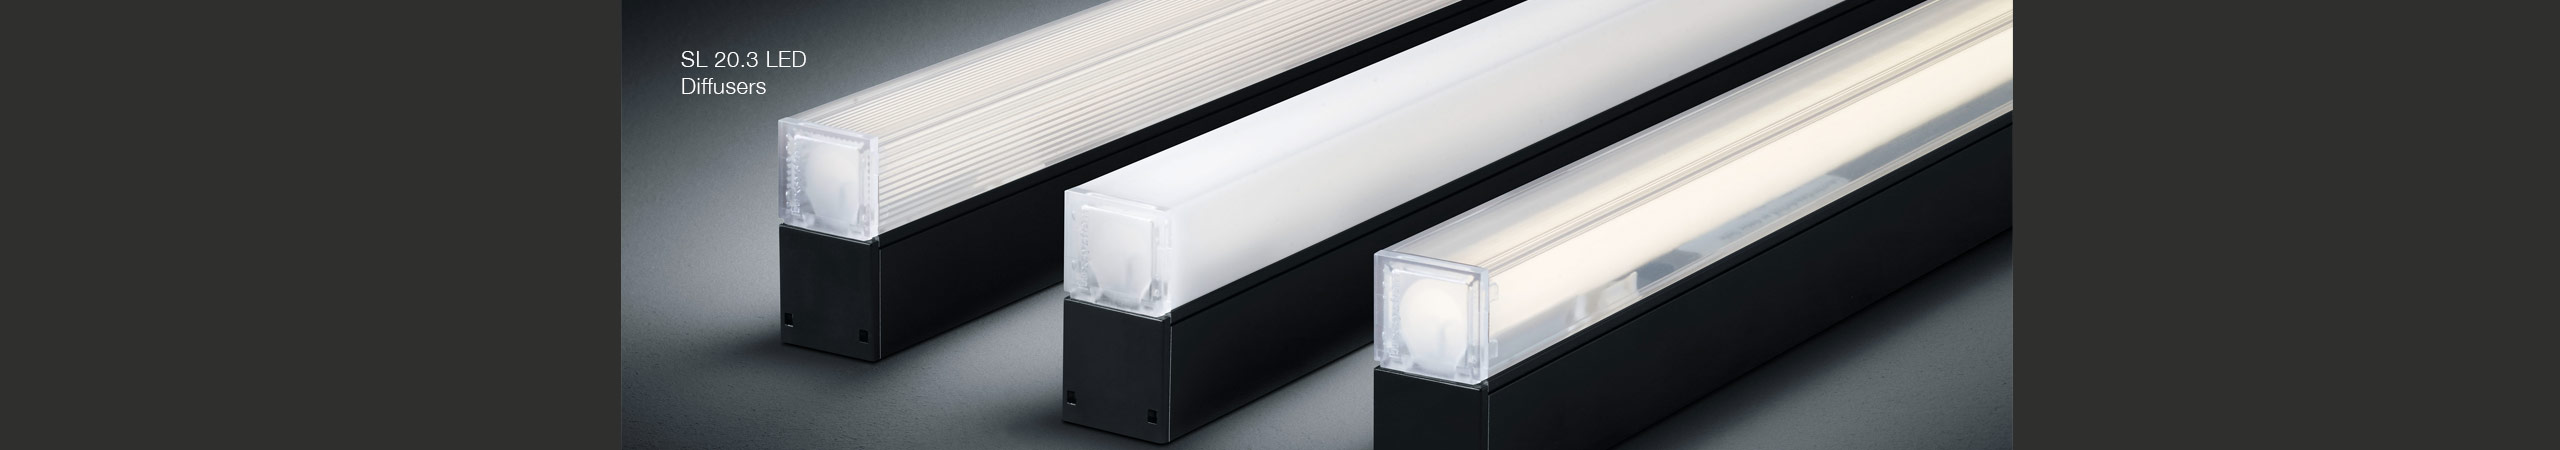 Luxsystem LED Luminaires Diffusers